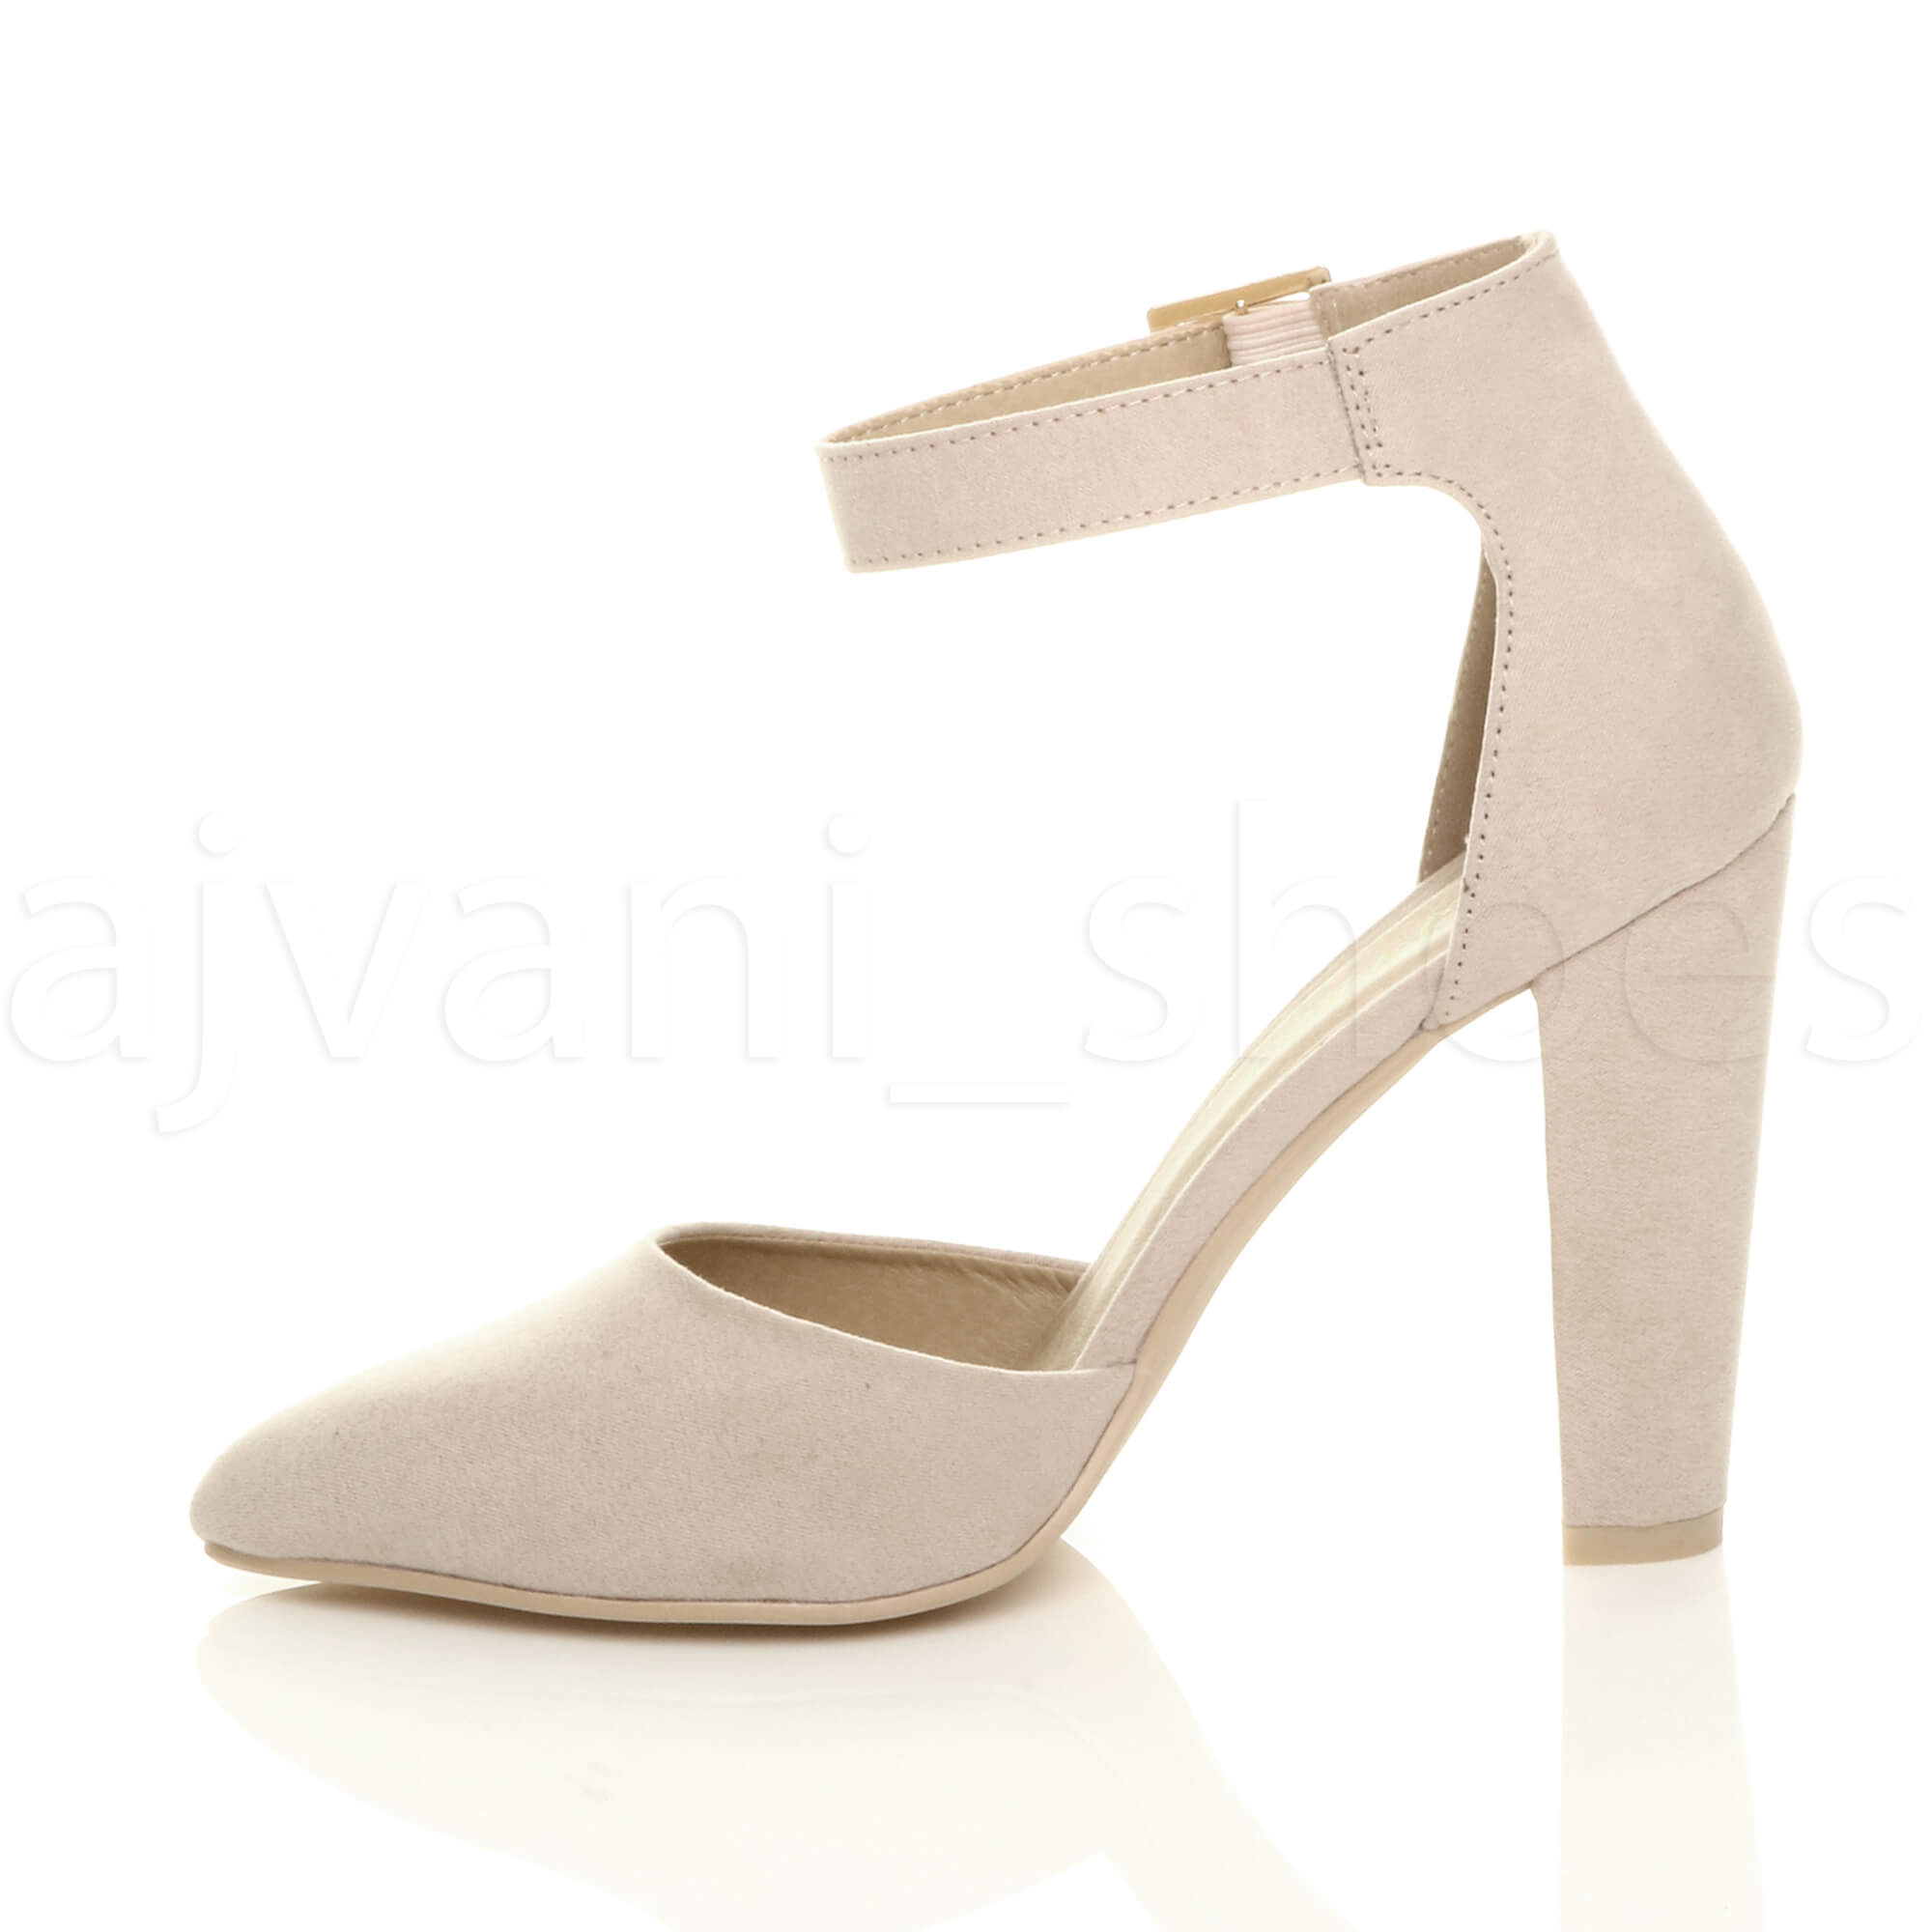 WOMENS-LADIES-HIGH-BLOCK-HEEL-ANKLE-STRAP-BUCKLE-POINTED-COURT-SHOES-SIZE thumbnail 4